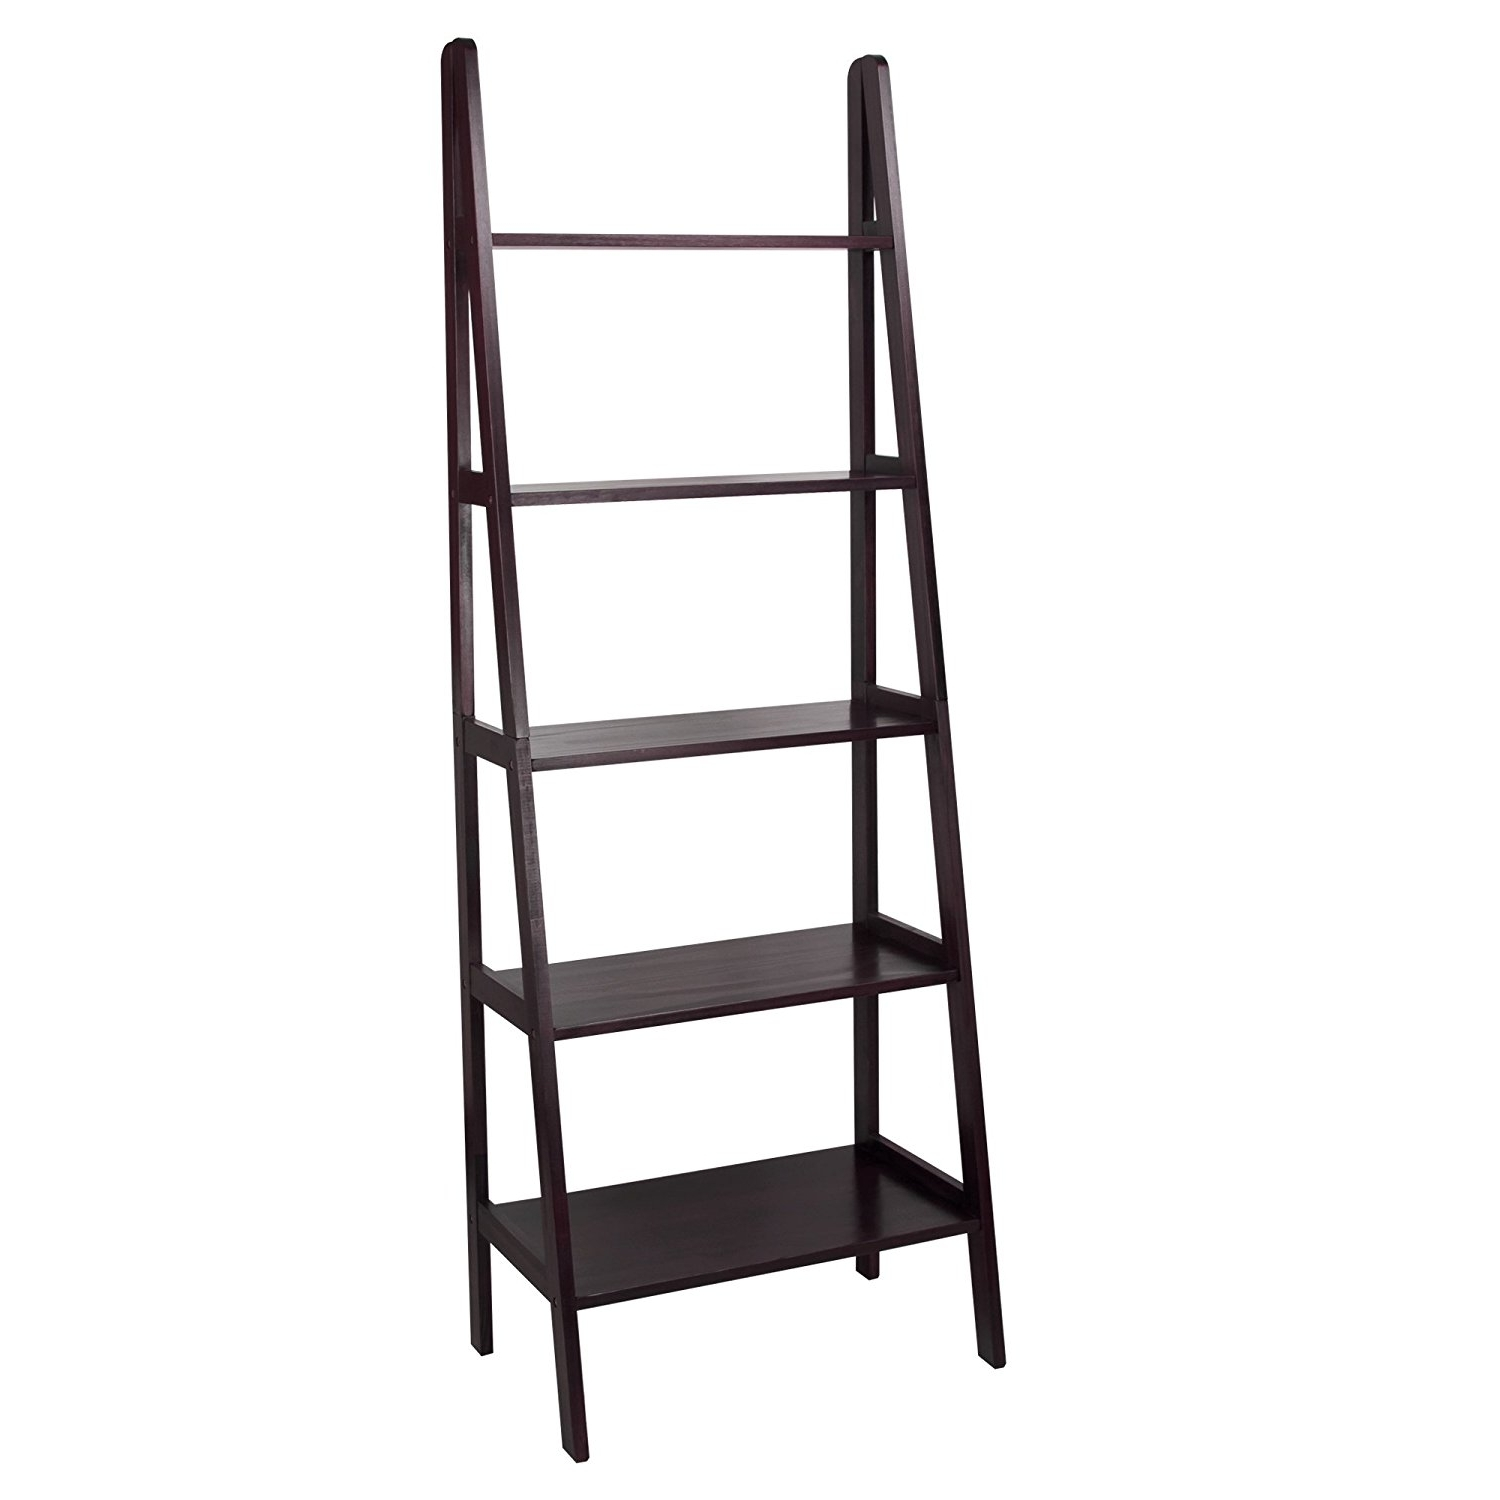 Amazon: Casual Home 176 53 5 Shelf Ladder Bookcase, Espresso Intended For Most Current Ladder Bookcases (View 1 of 15)